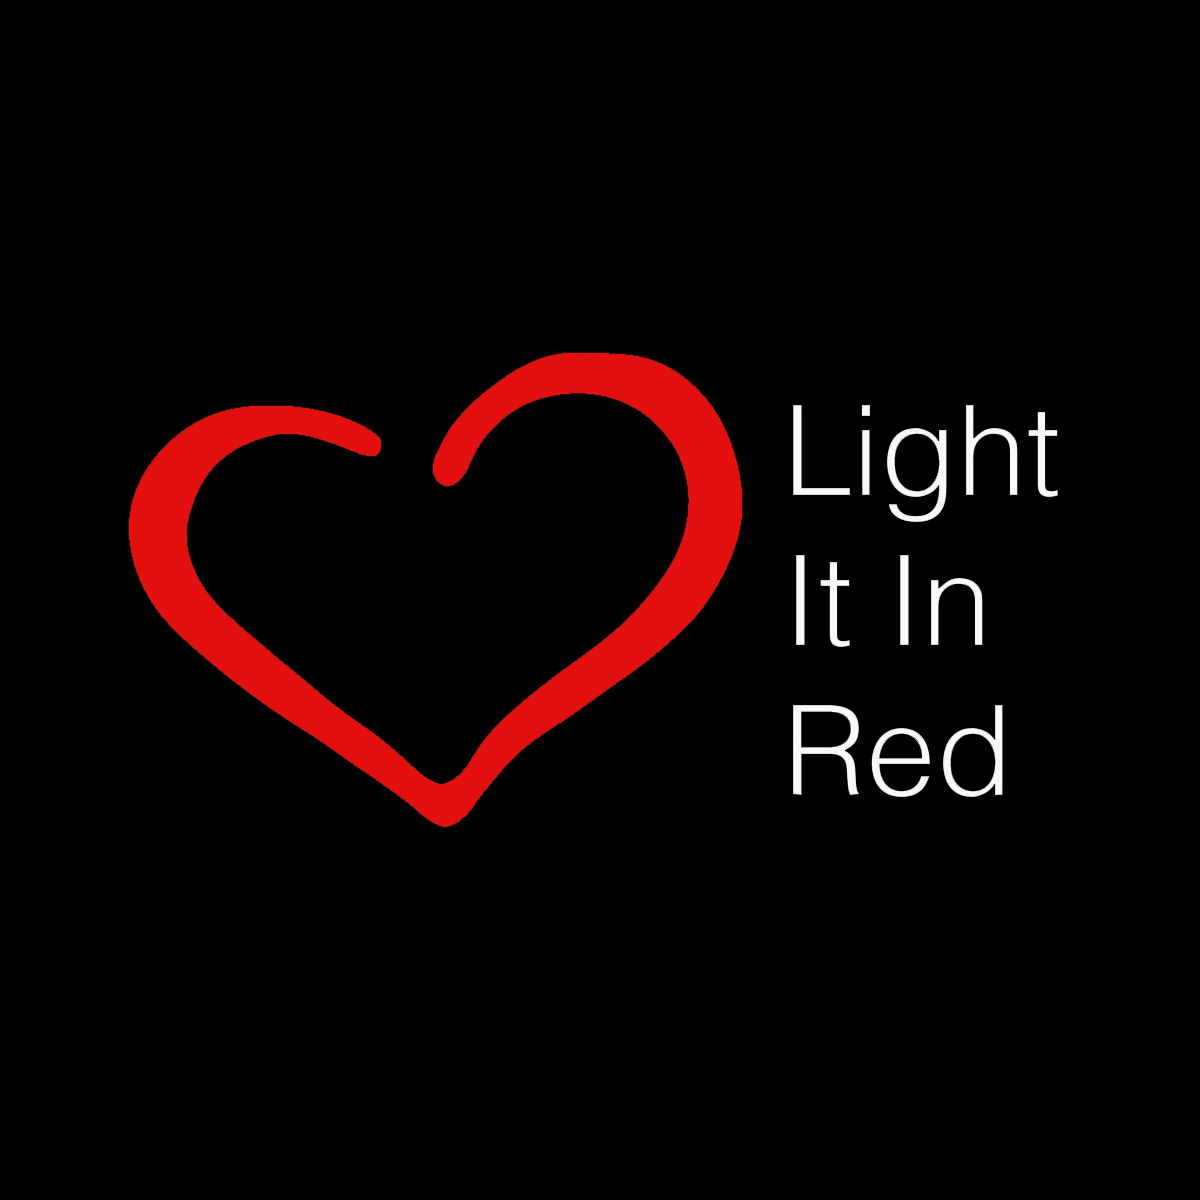 Light it in Red